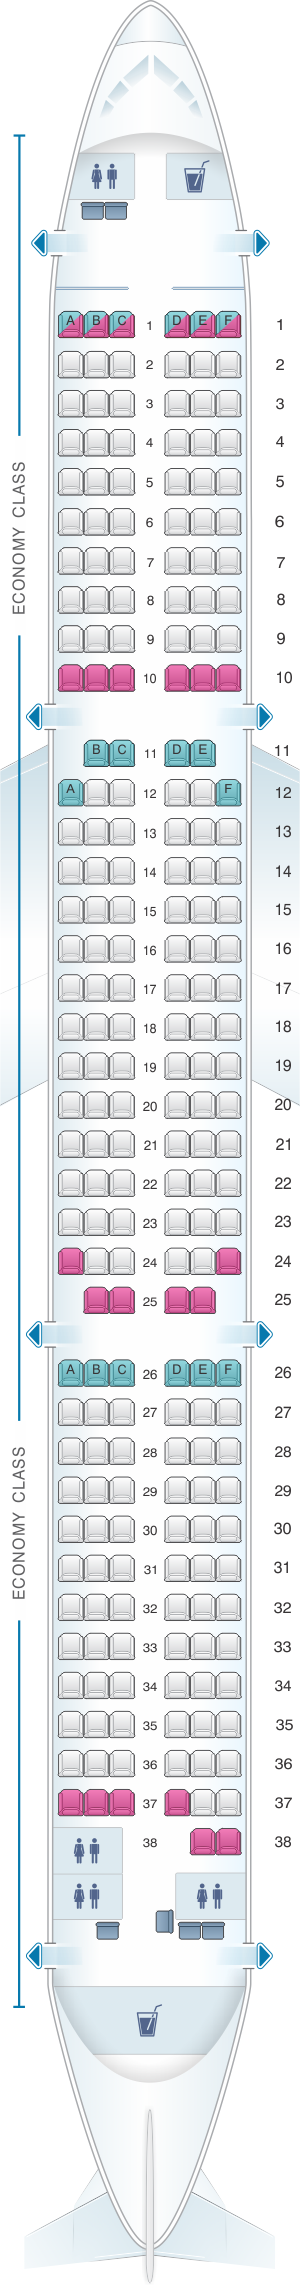 Seat map for Monarch Airlines Airbus A321 200